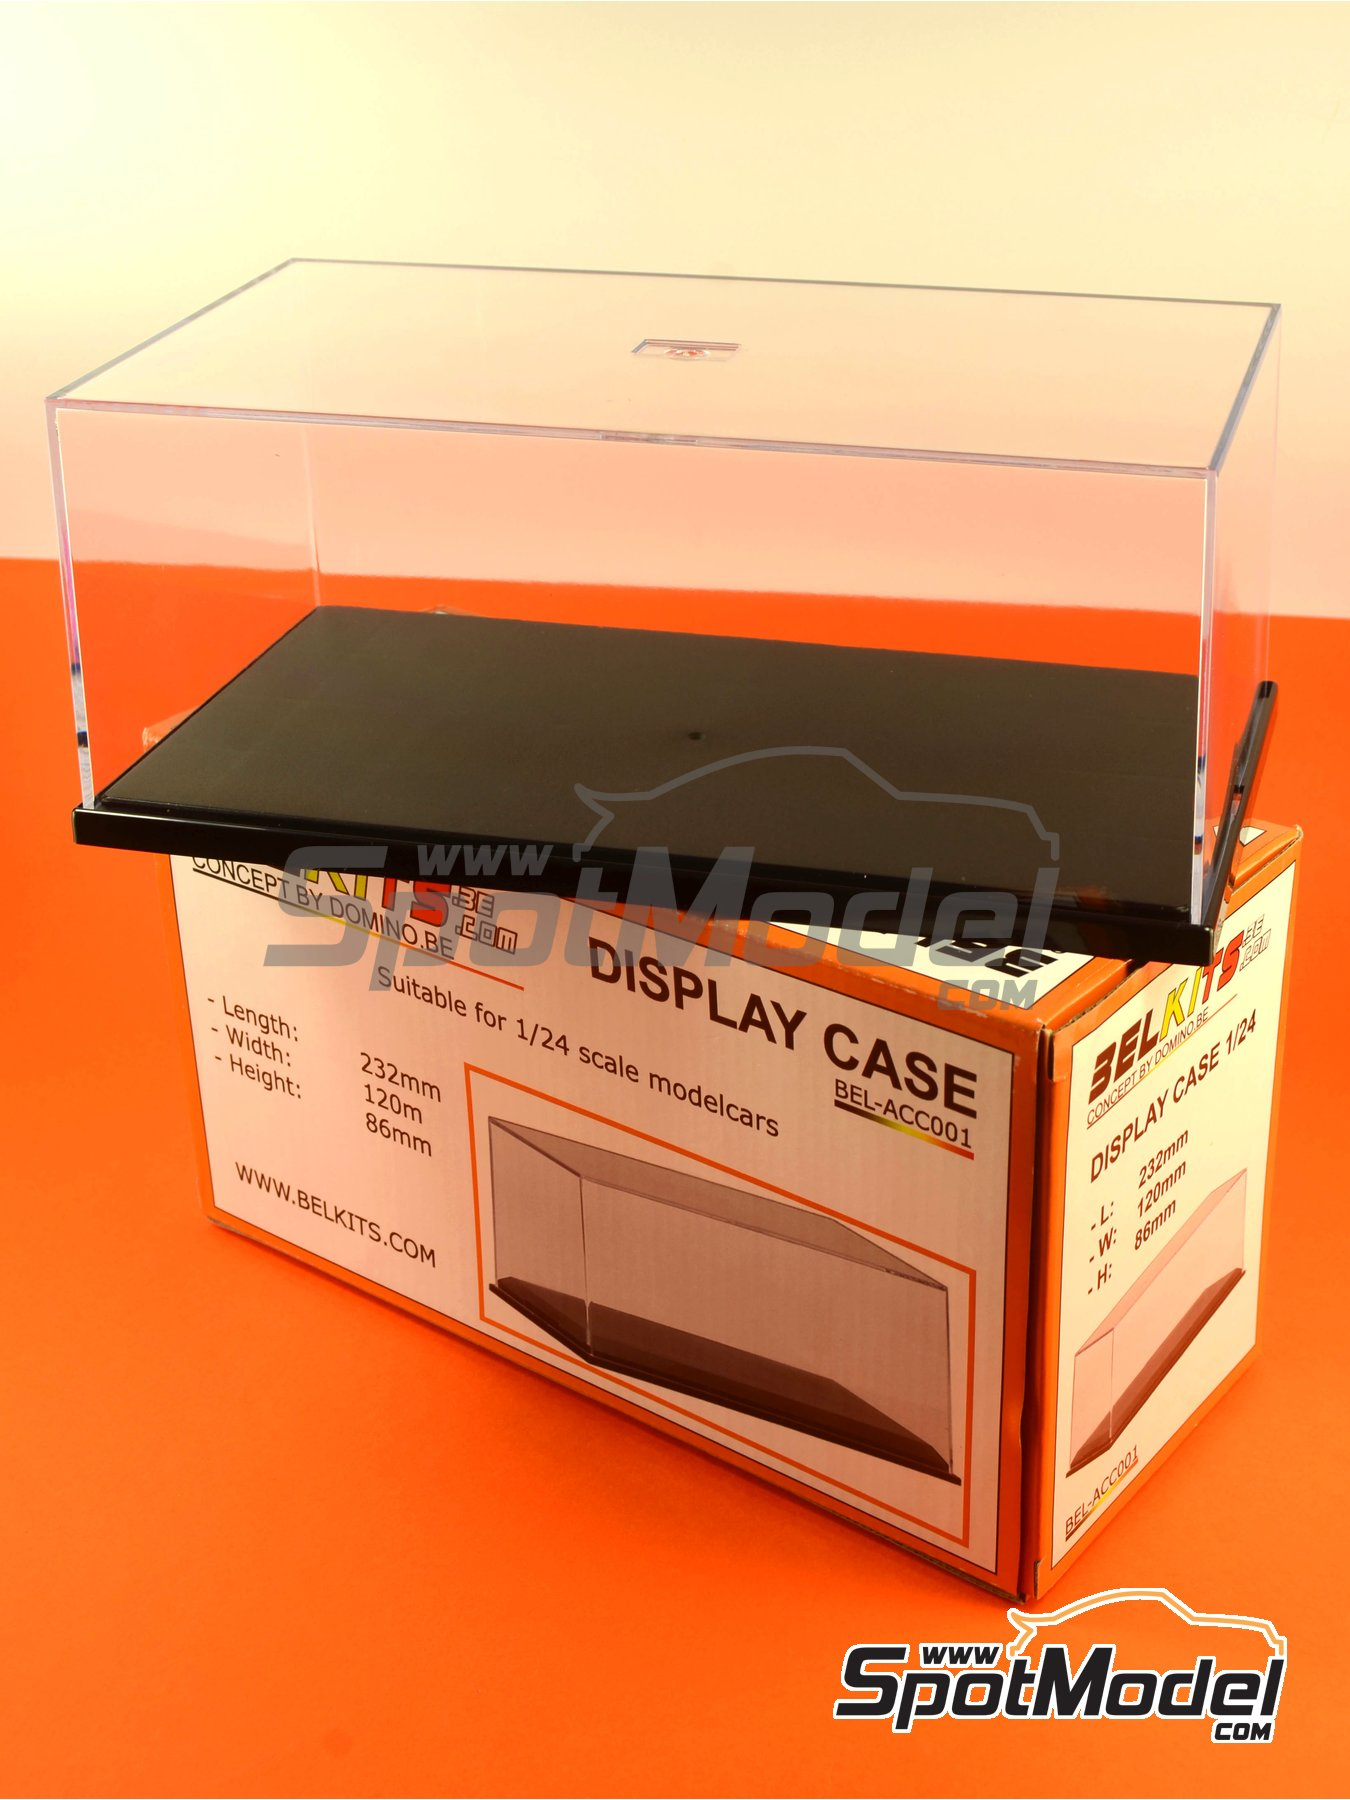 Display case for 1/24 scale model cars | Display case in 1/24 scale manufactured by Belkits (ref.BEL-ACC001) image